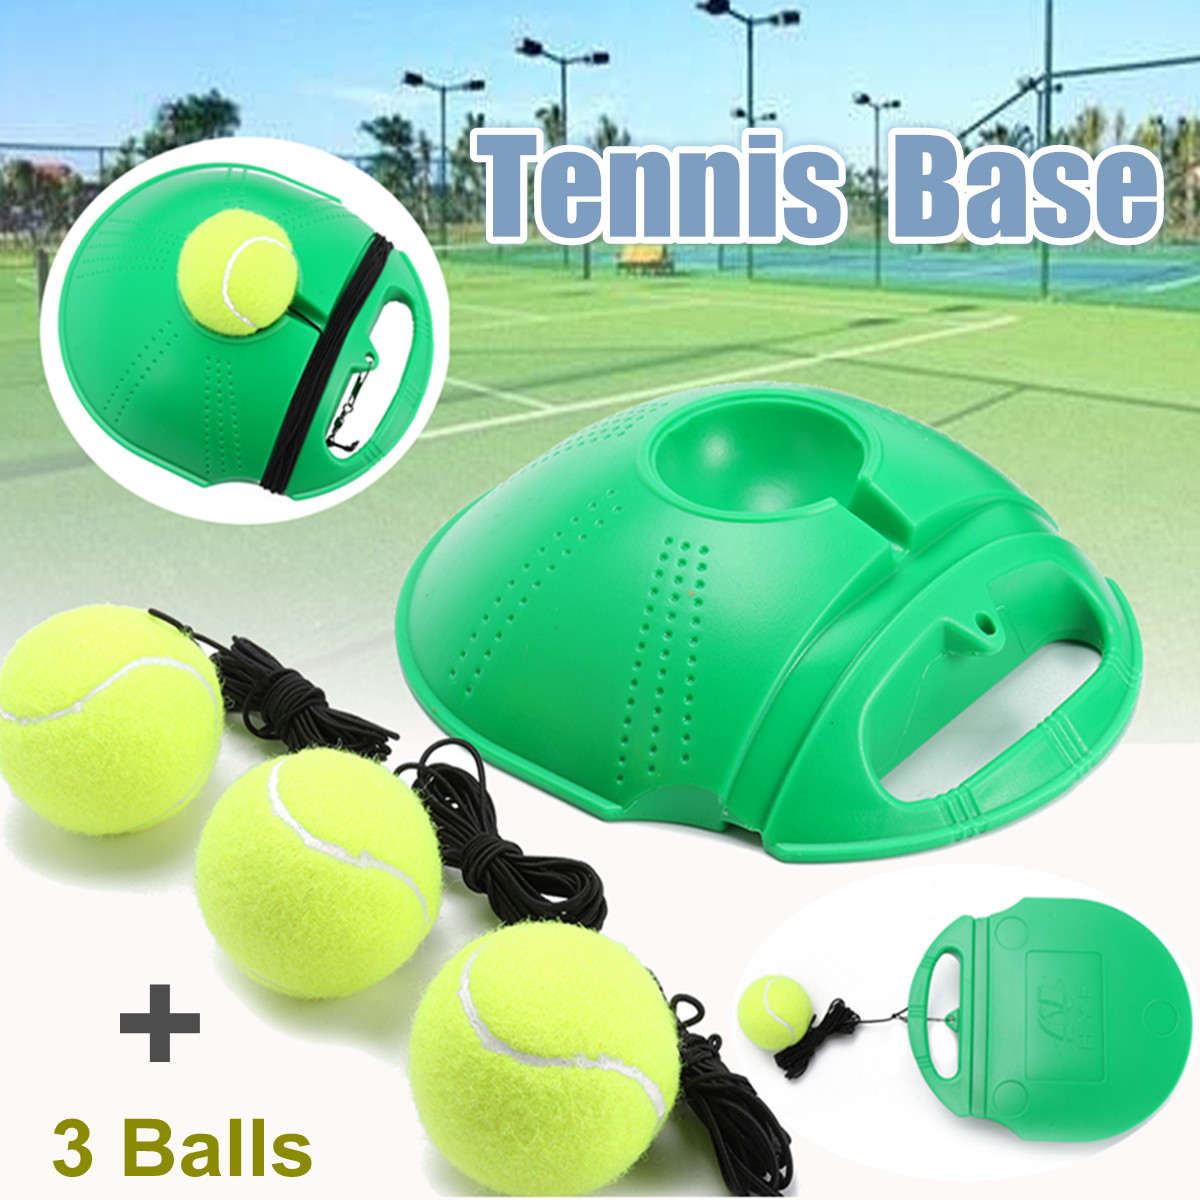 Tennis Trainer and Self-study Tennis Training Tool with Rebound Balls and Baseboard 6